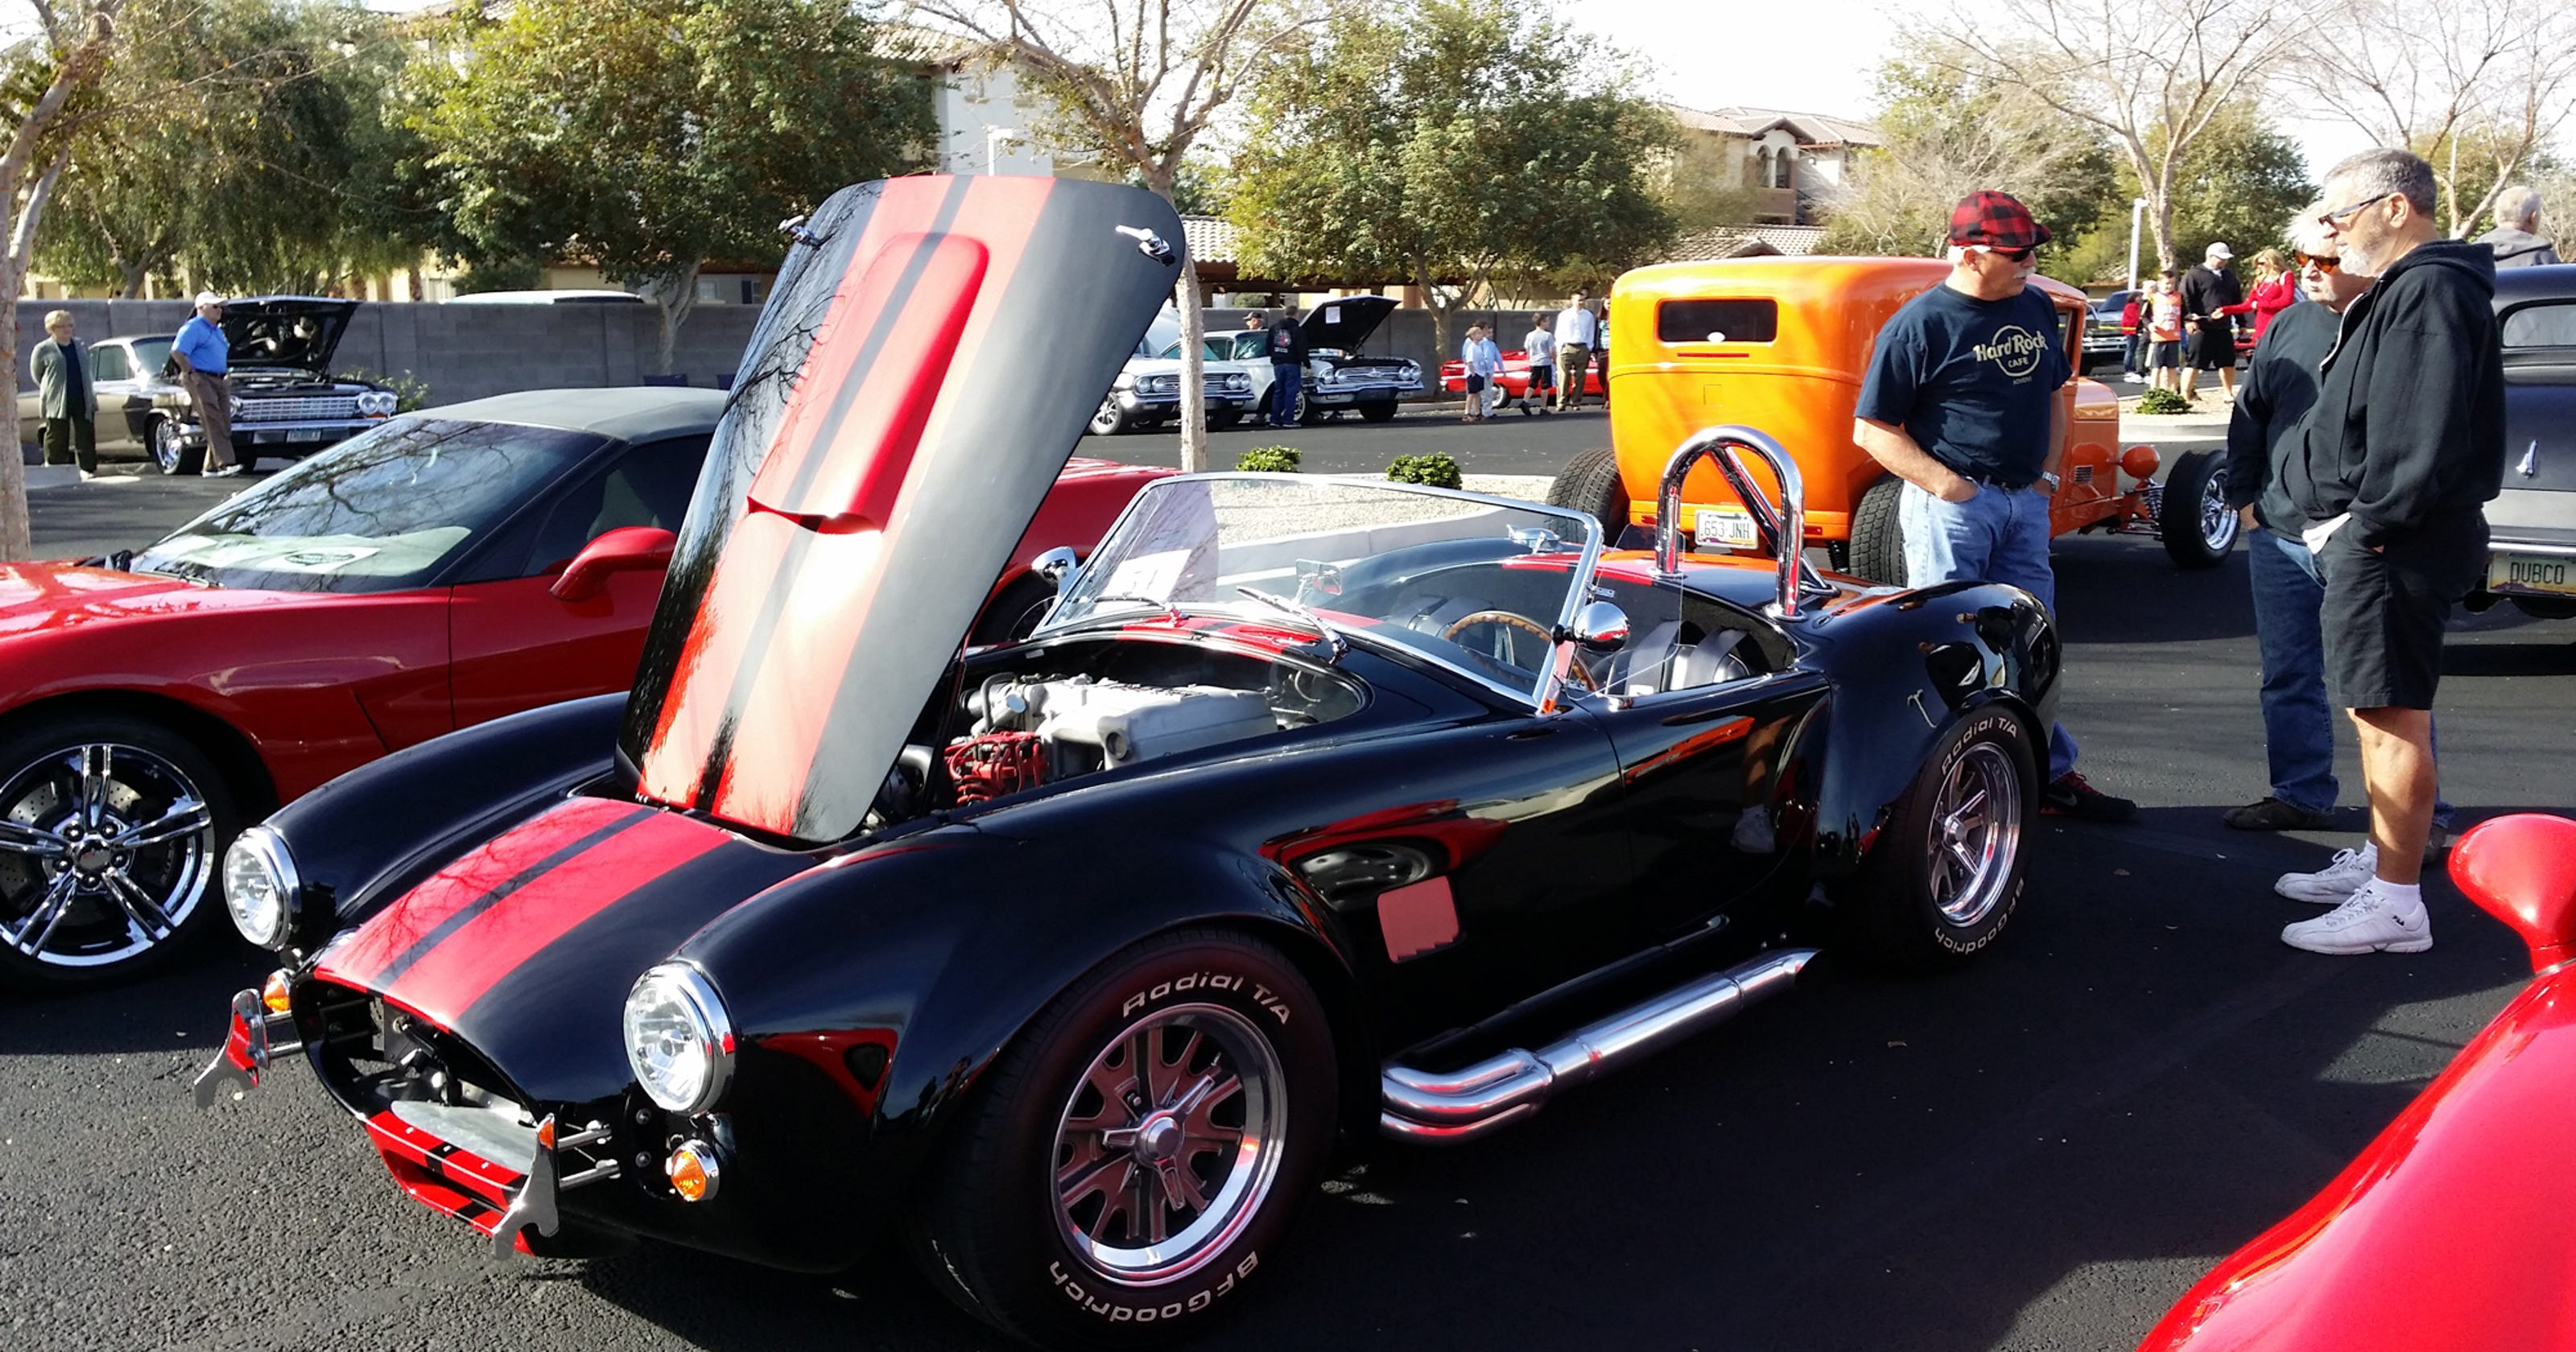 Car Shows This Weekend - Sanderson ford car show